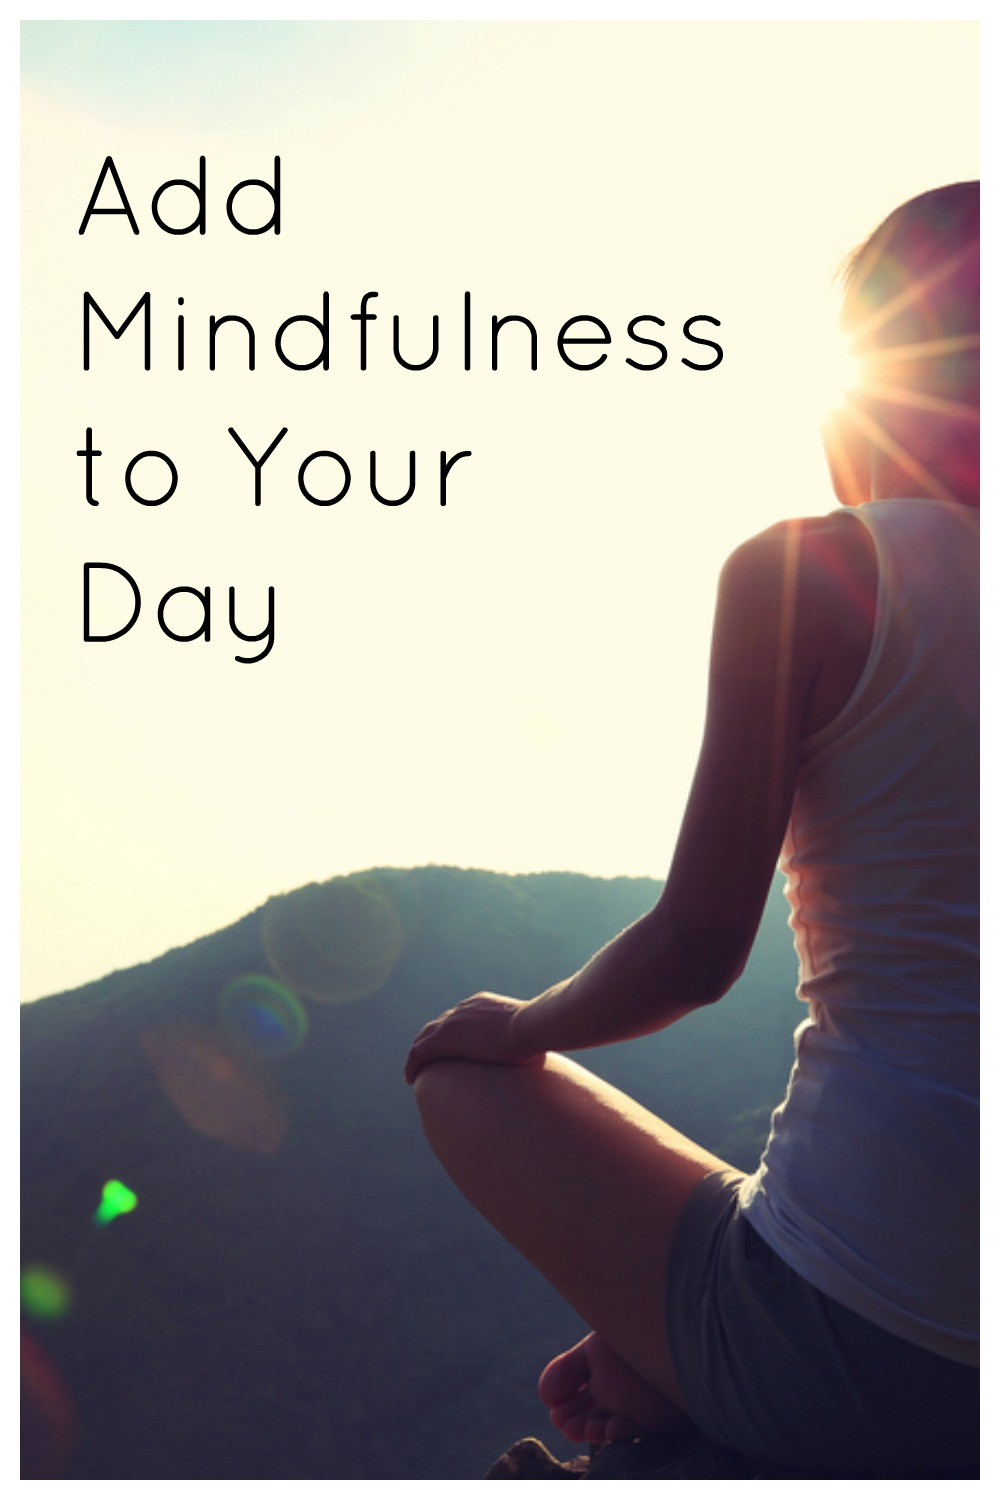 add mindfulness to your day